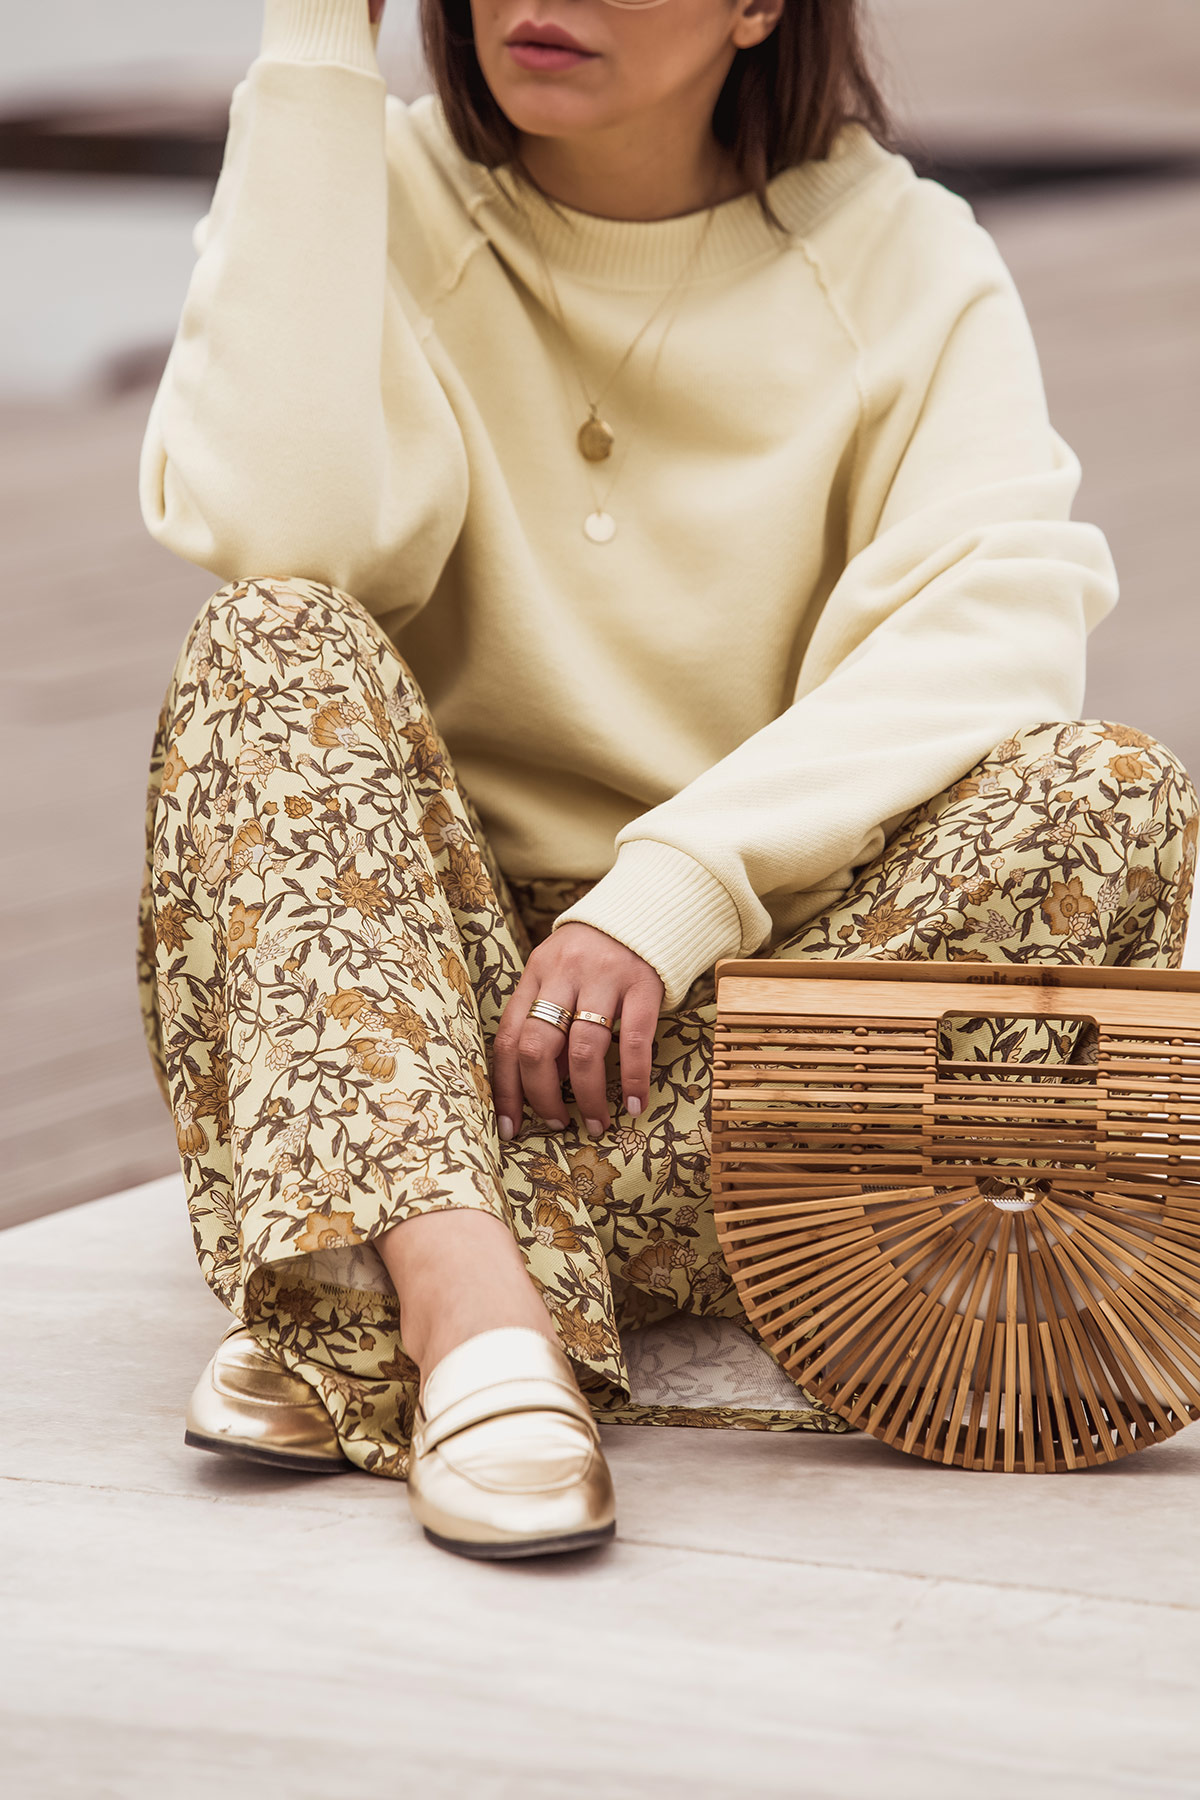 Cult Gaia bag as seen at Stella Asteria - Fashion & Lifestyle Blogger wearing a yellow outfit with golden flat mules and the iconic Cult Gaia arch bag.